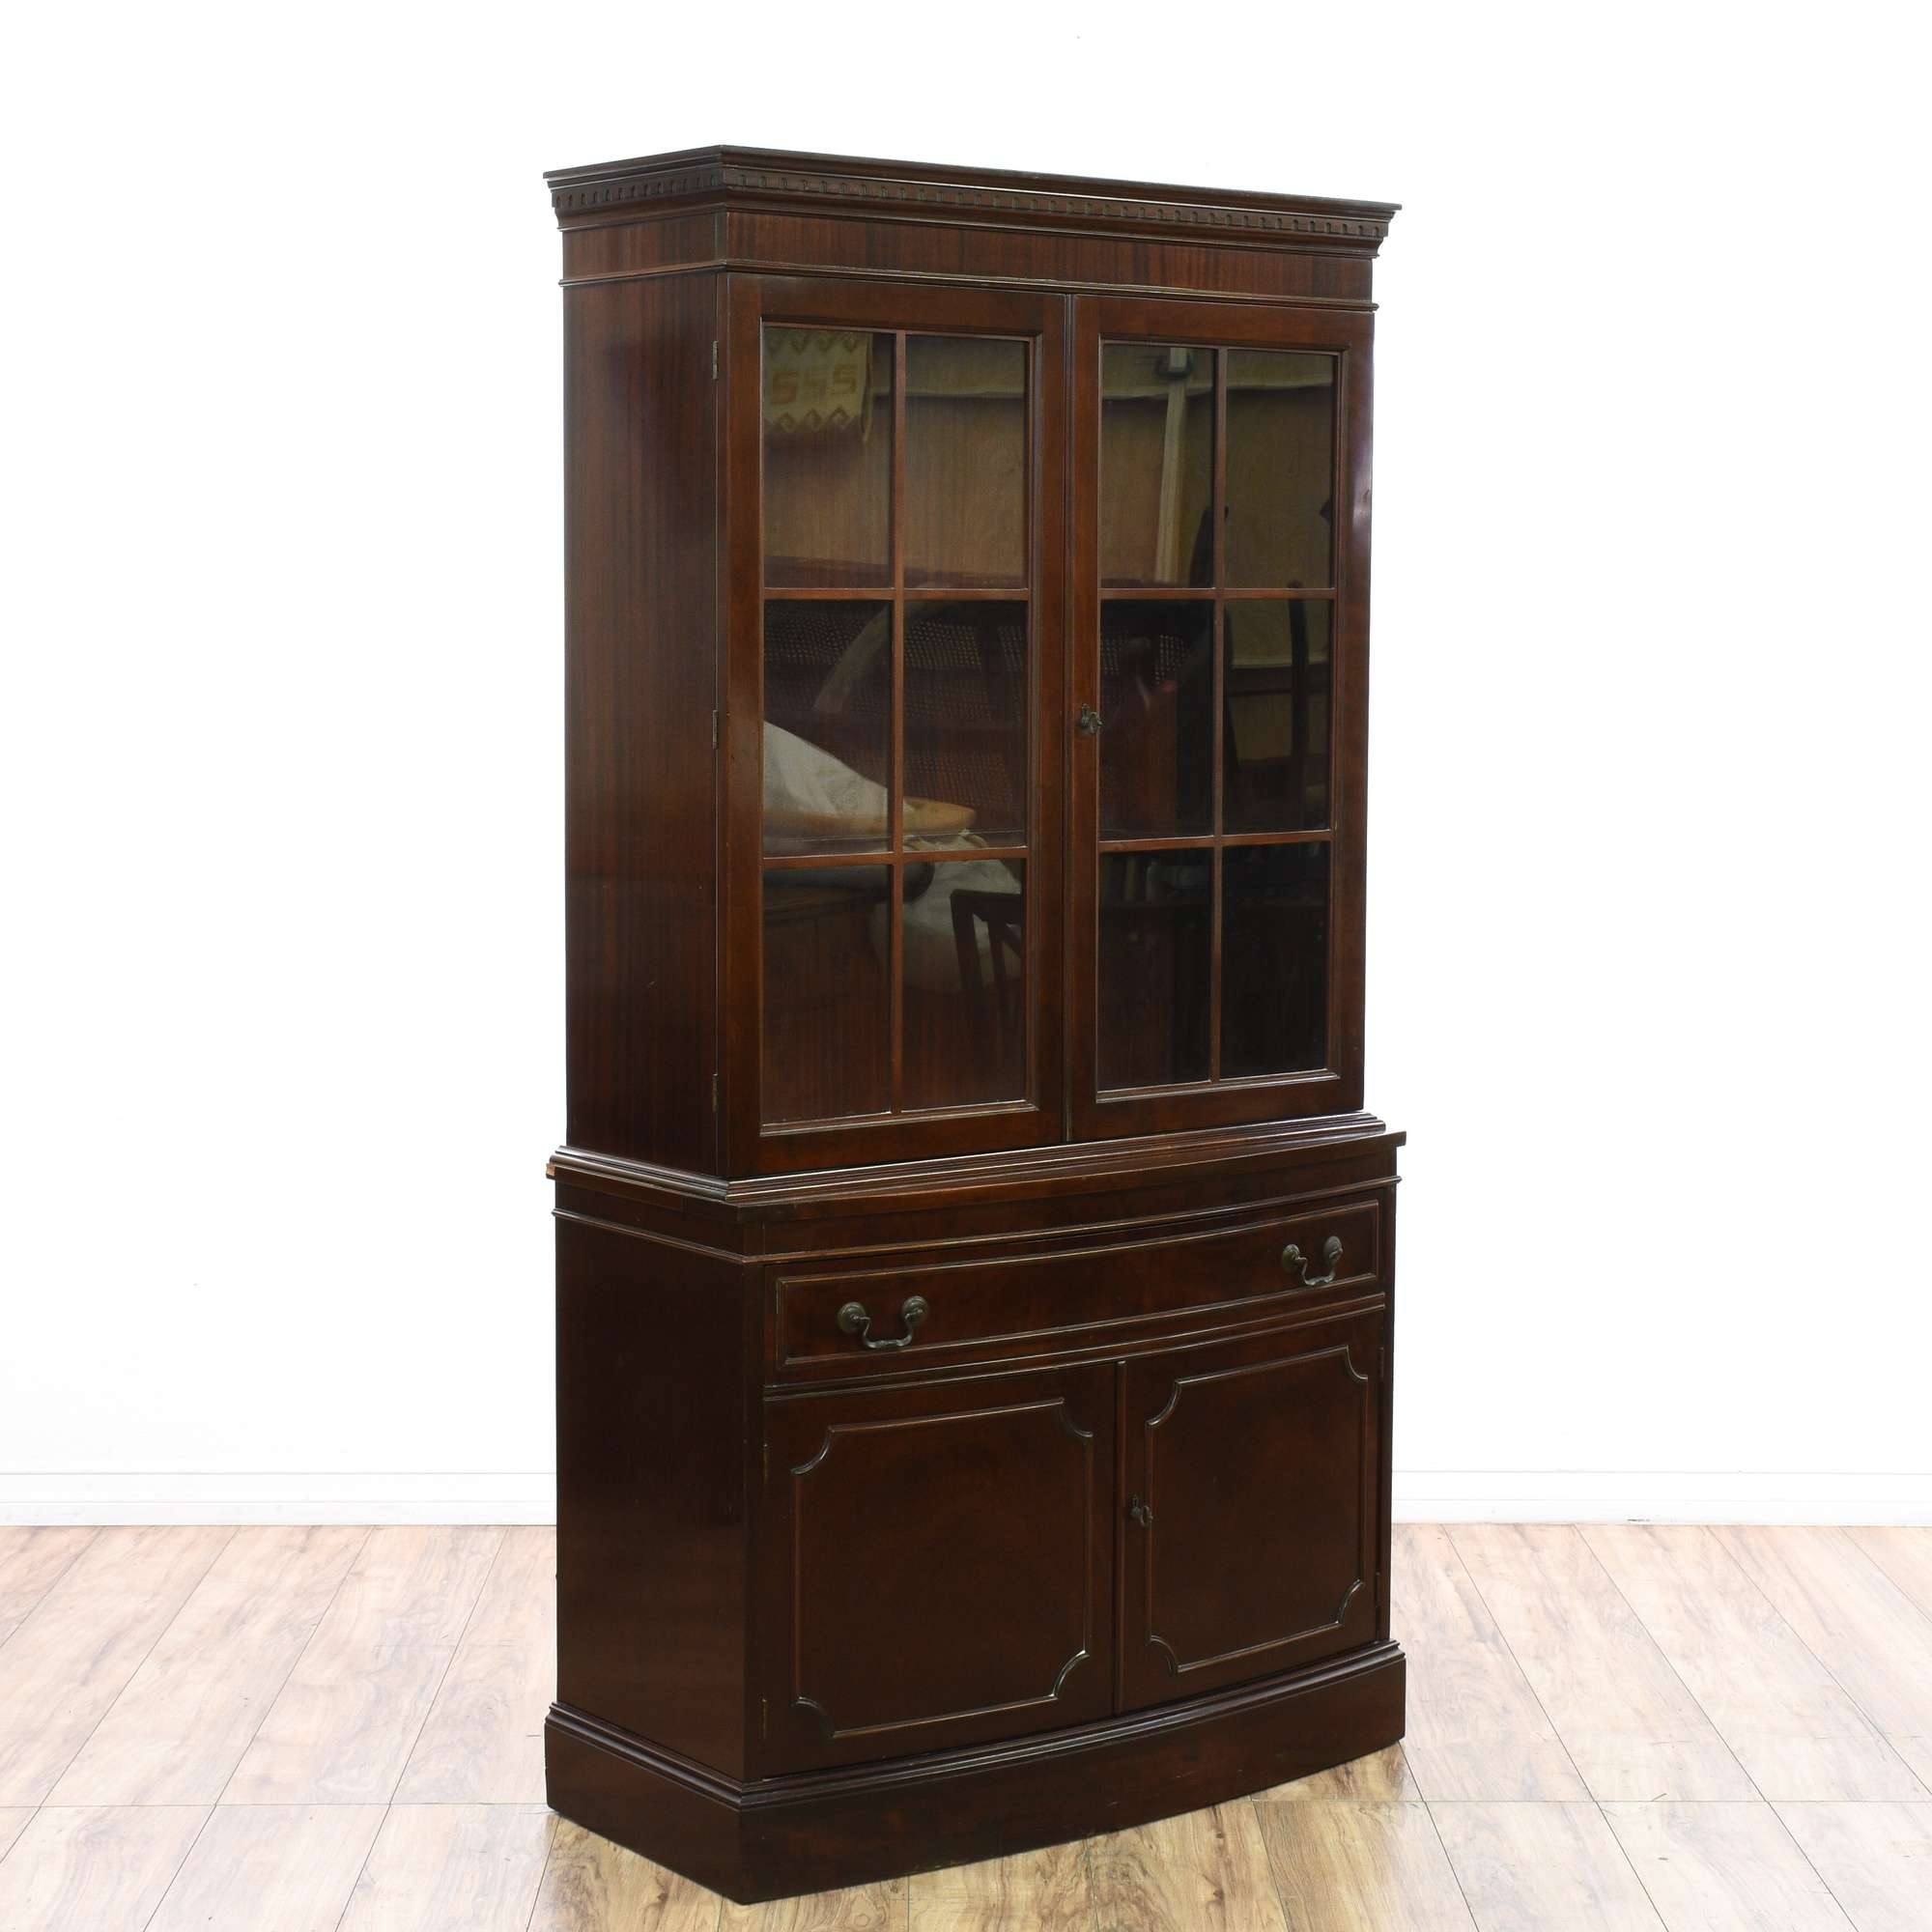 hutch inc furniture bernie s phyl country french sunny cabinet designs china by